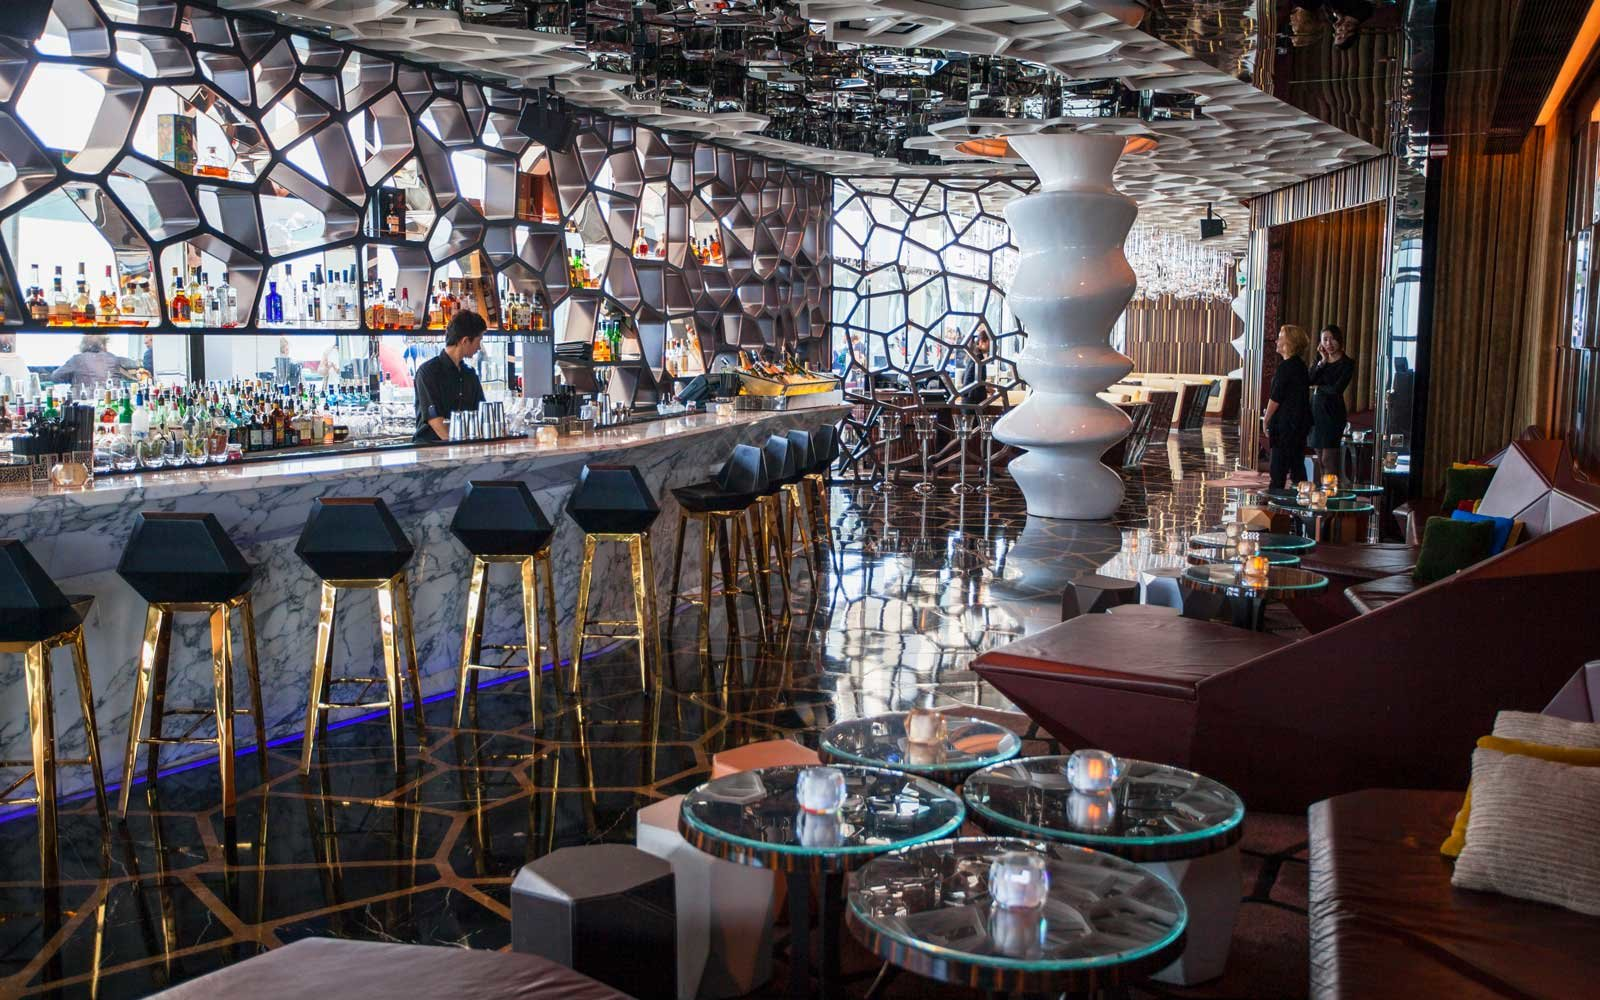 Ozone bar (highest in the world) in Ritz Carlton inside ICC, Kowloon, Hong Kong